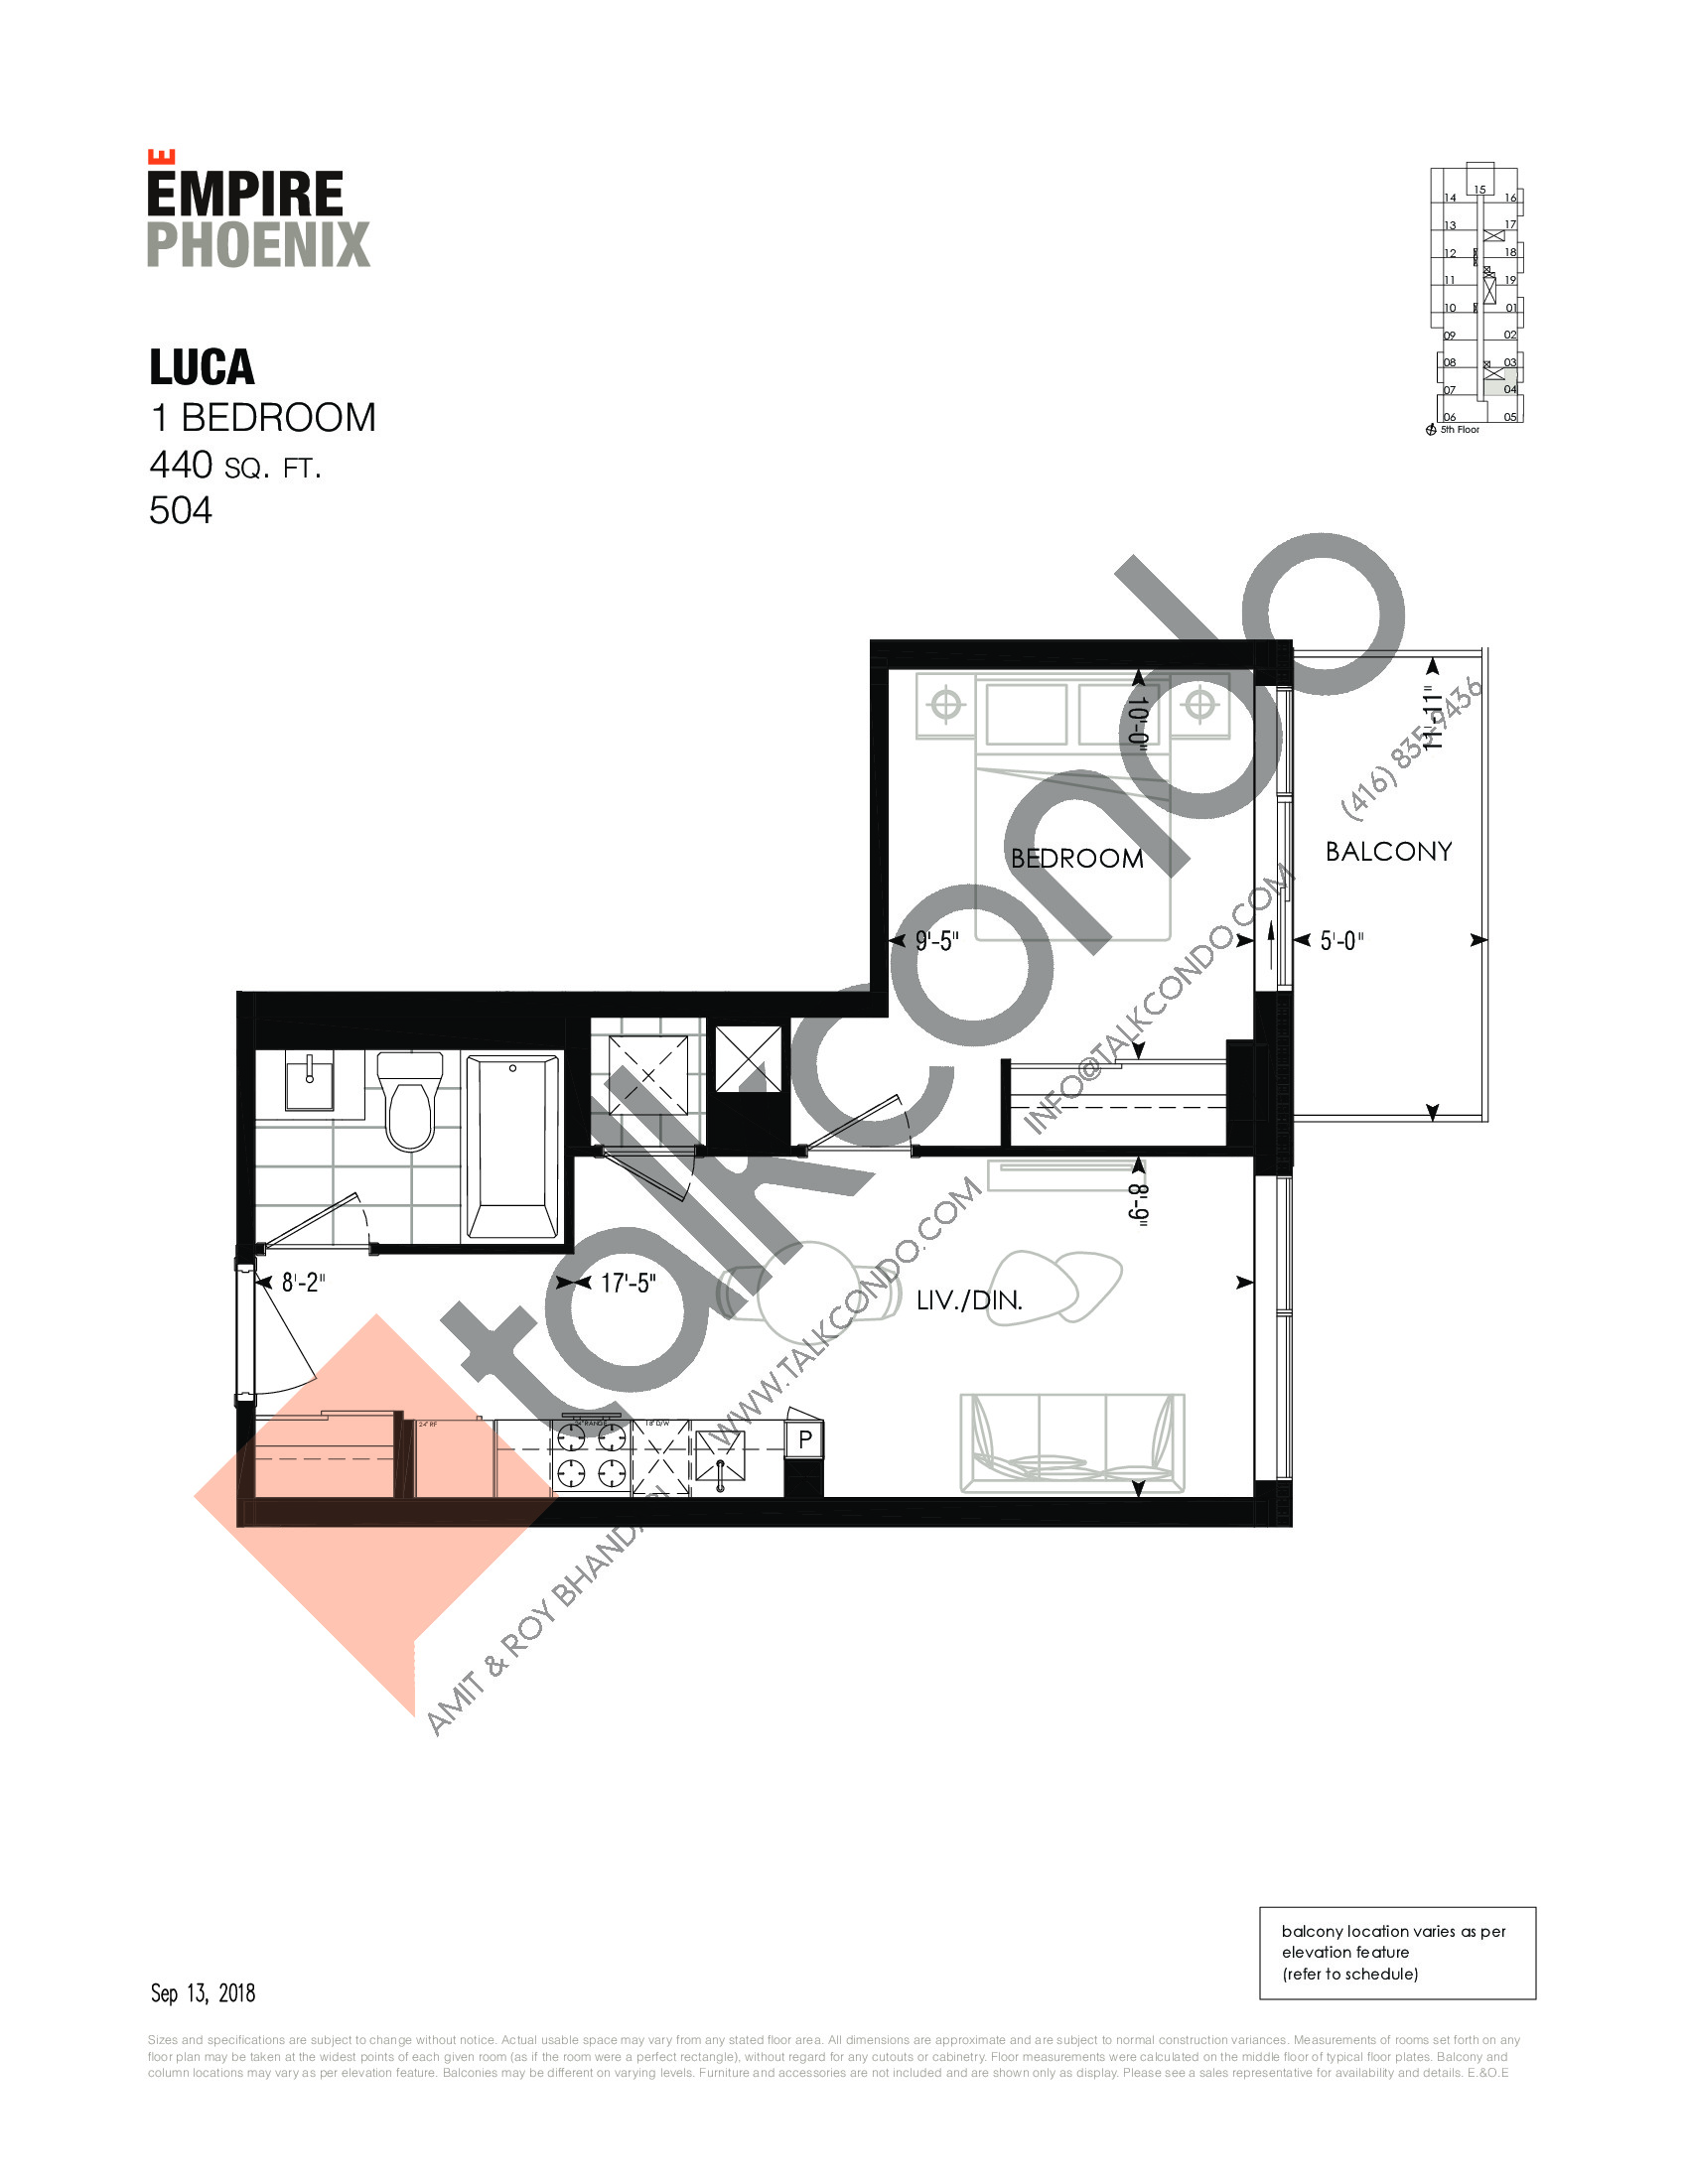 Luca Floor Plan at Empire Phoenix Phase 2 Condos - 440 sq.ft